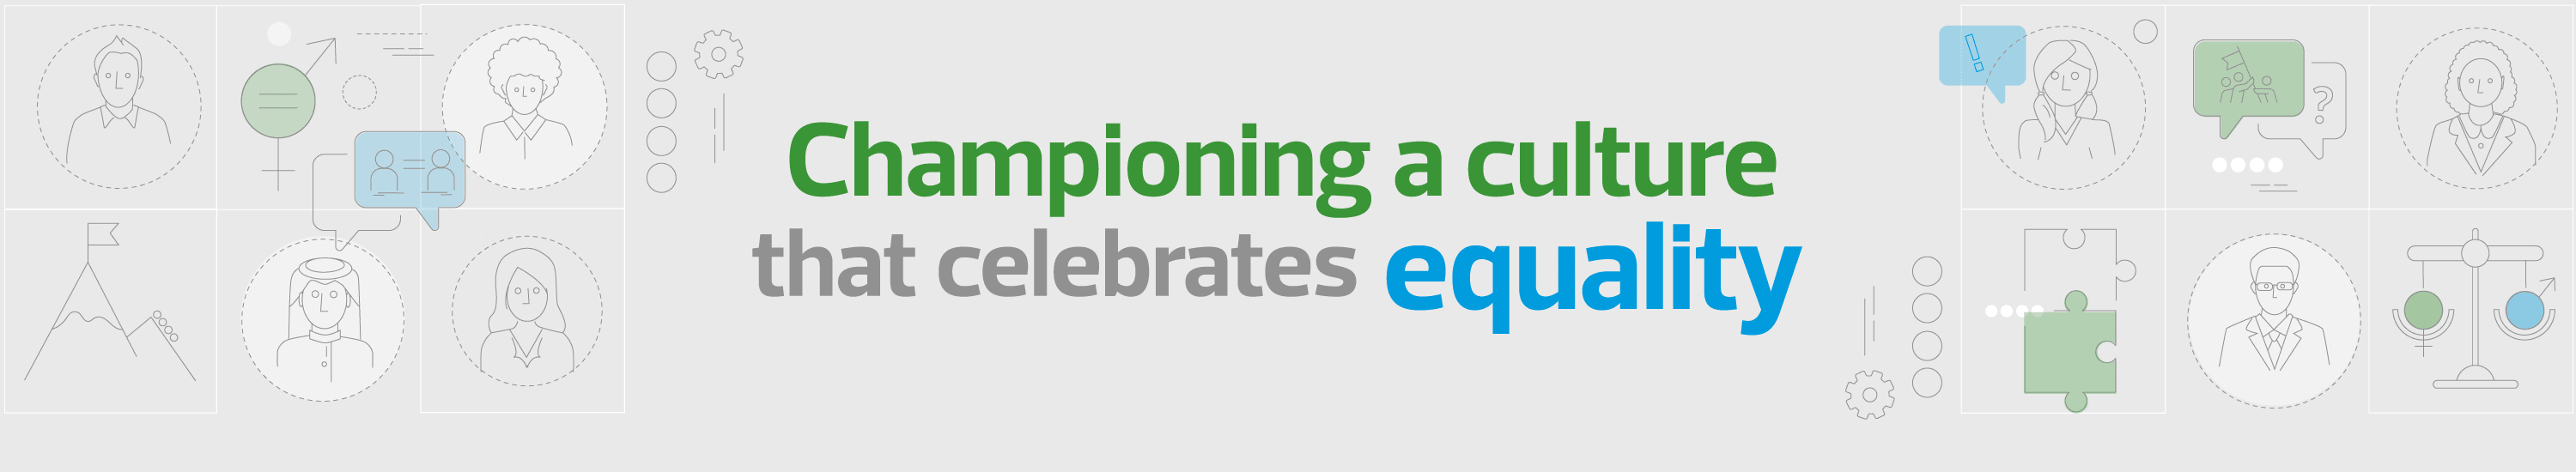 Championing a culture that celebrates equality